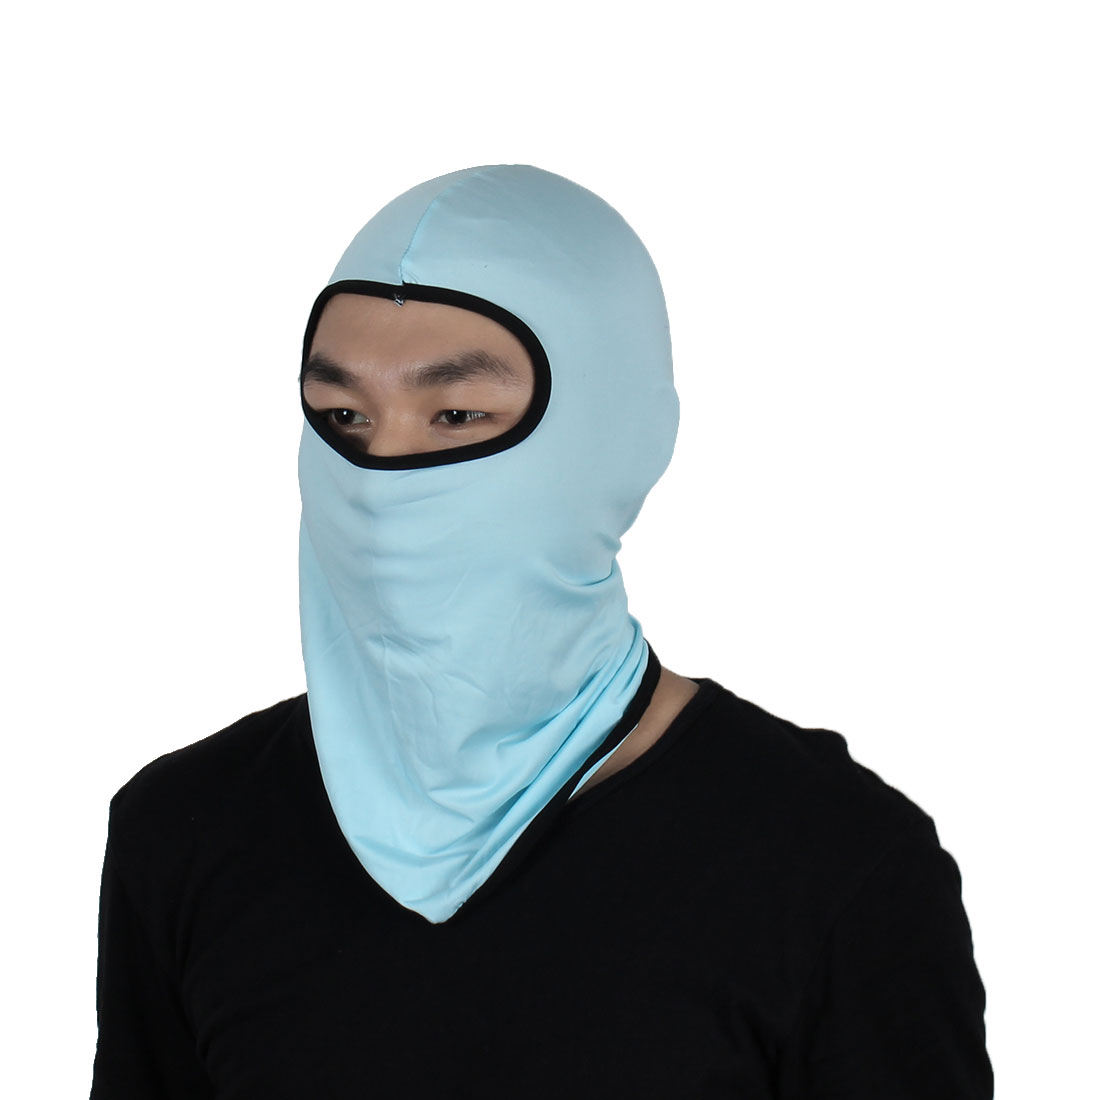 Full Face Mask Outdoor Activities Cycling Biking Neck Hat Helmet Balaclava Blue - image 4 de 4